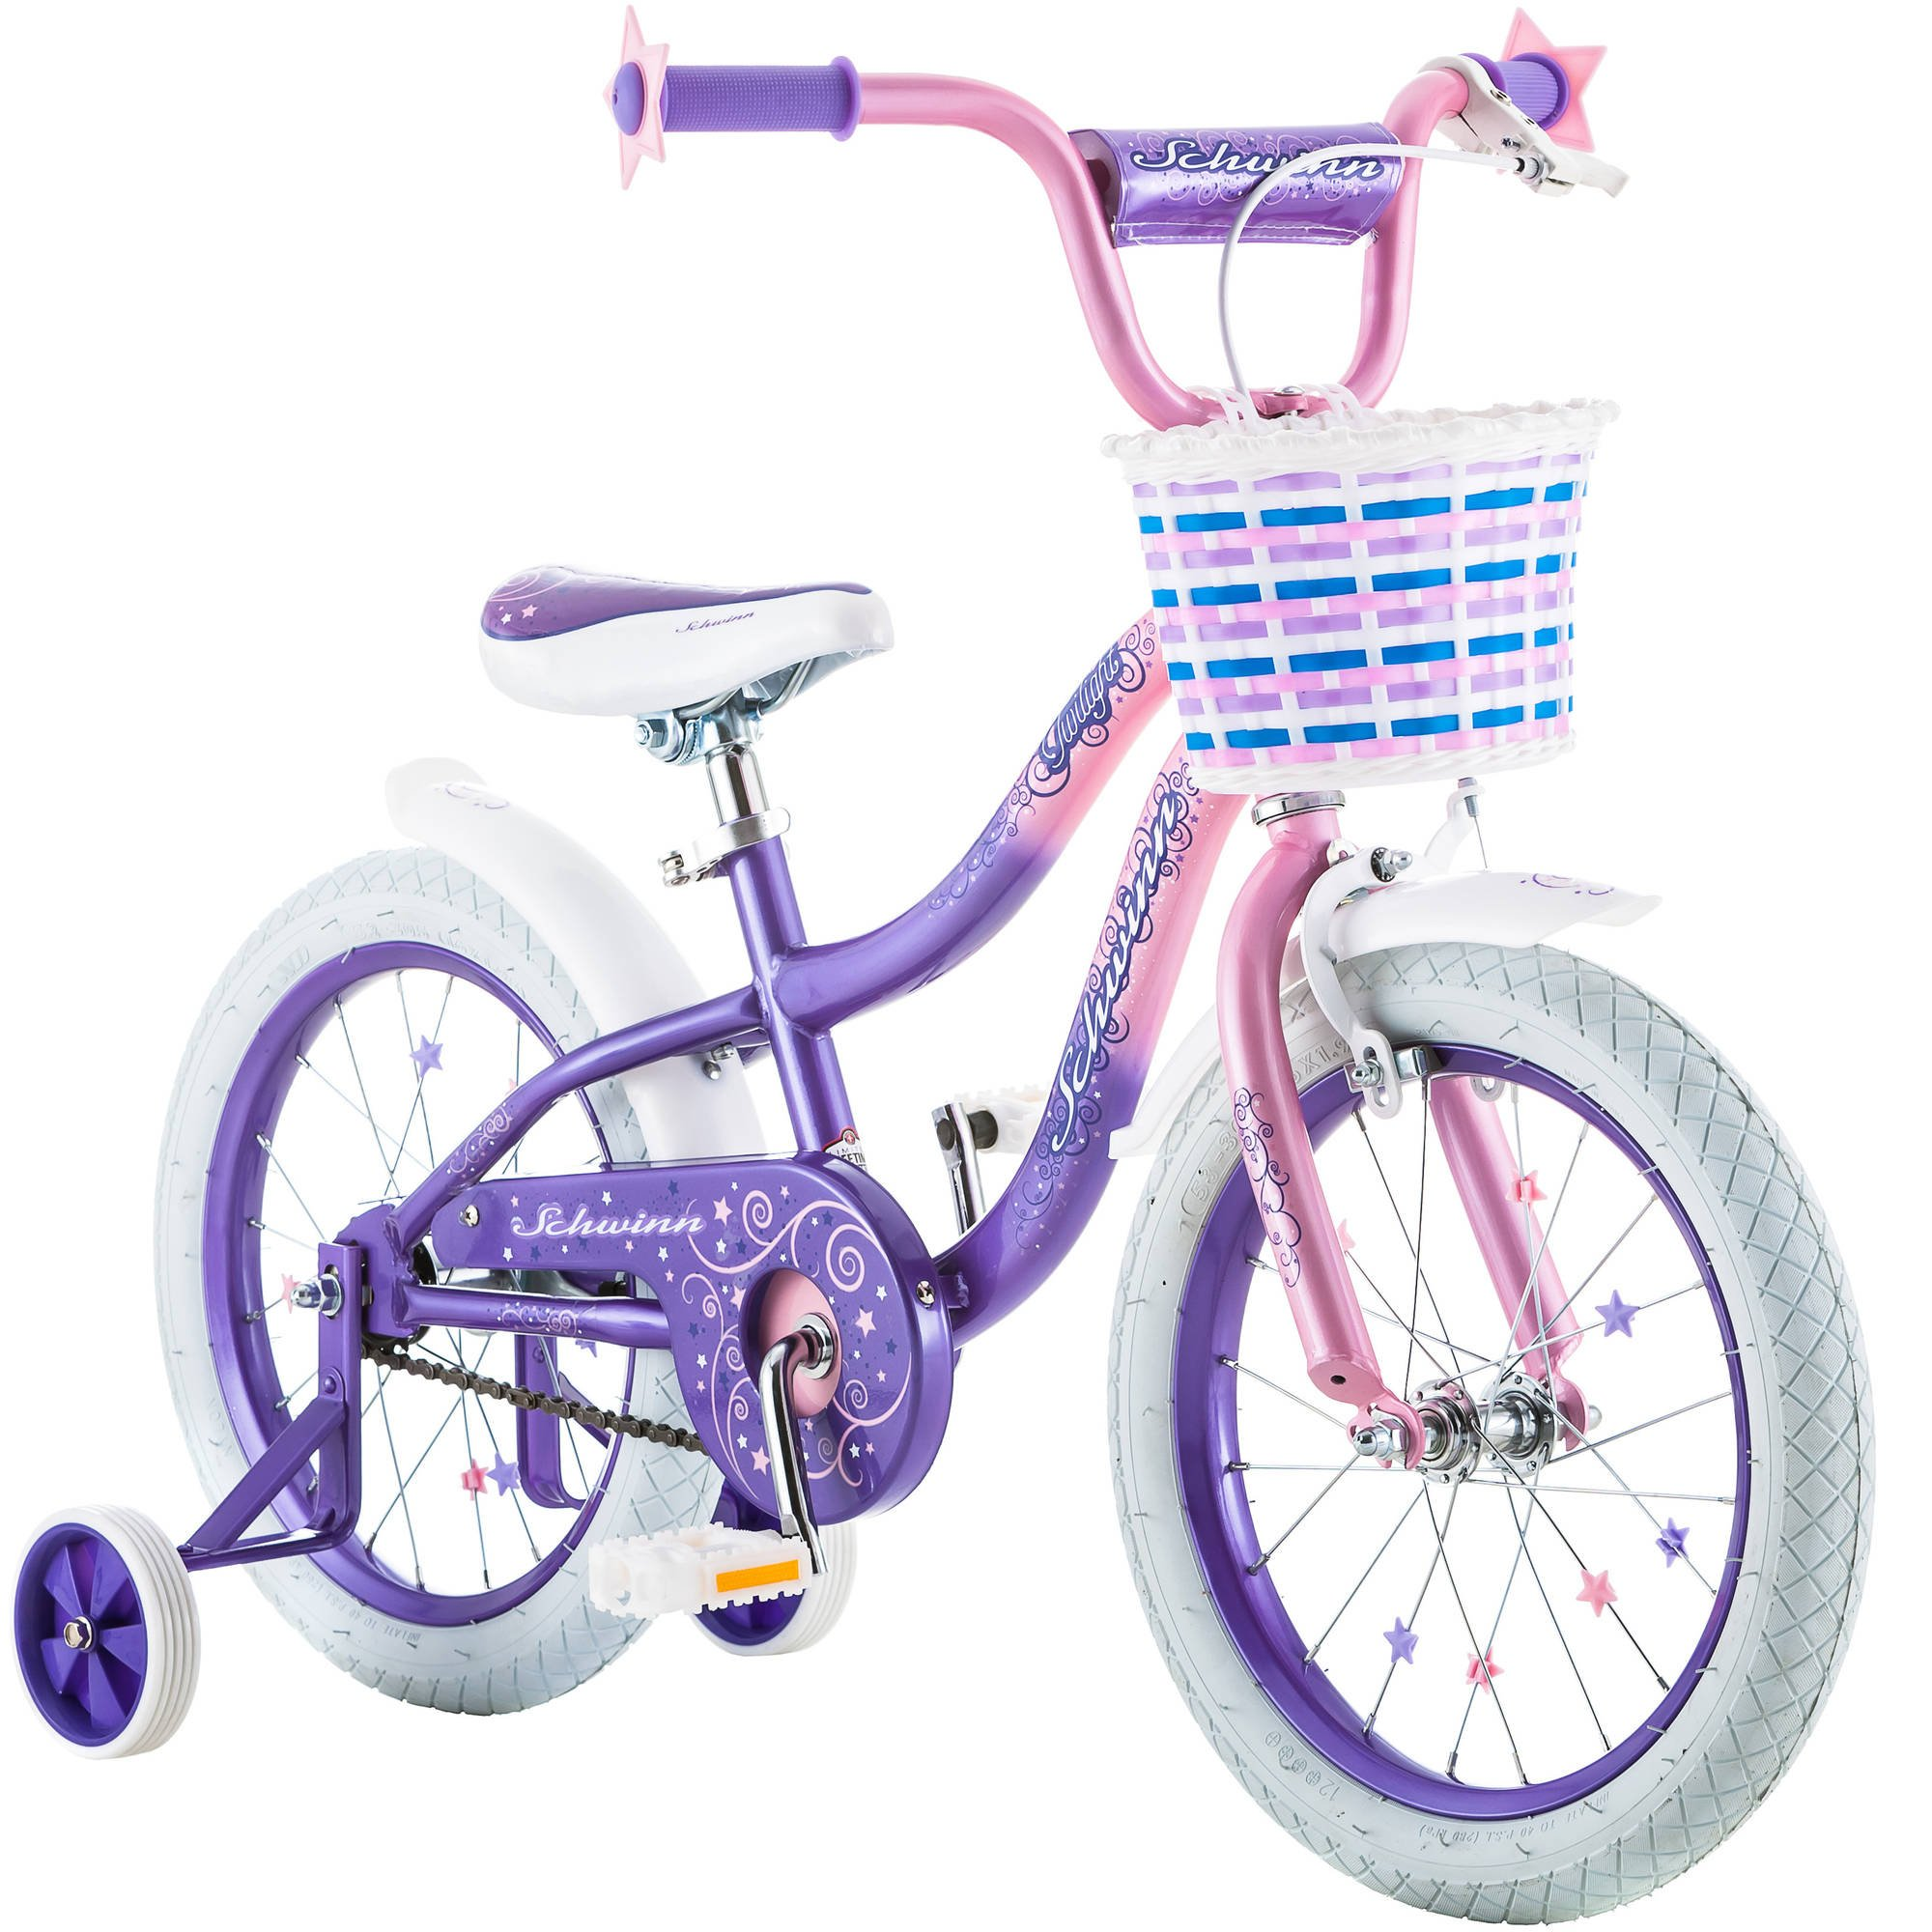 16'' Schwinn Twilight Girls' Bike, Pink/Purple